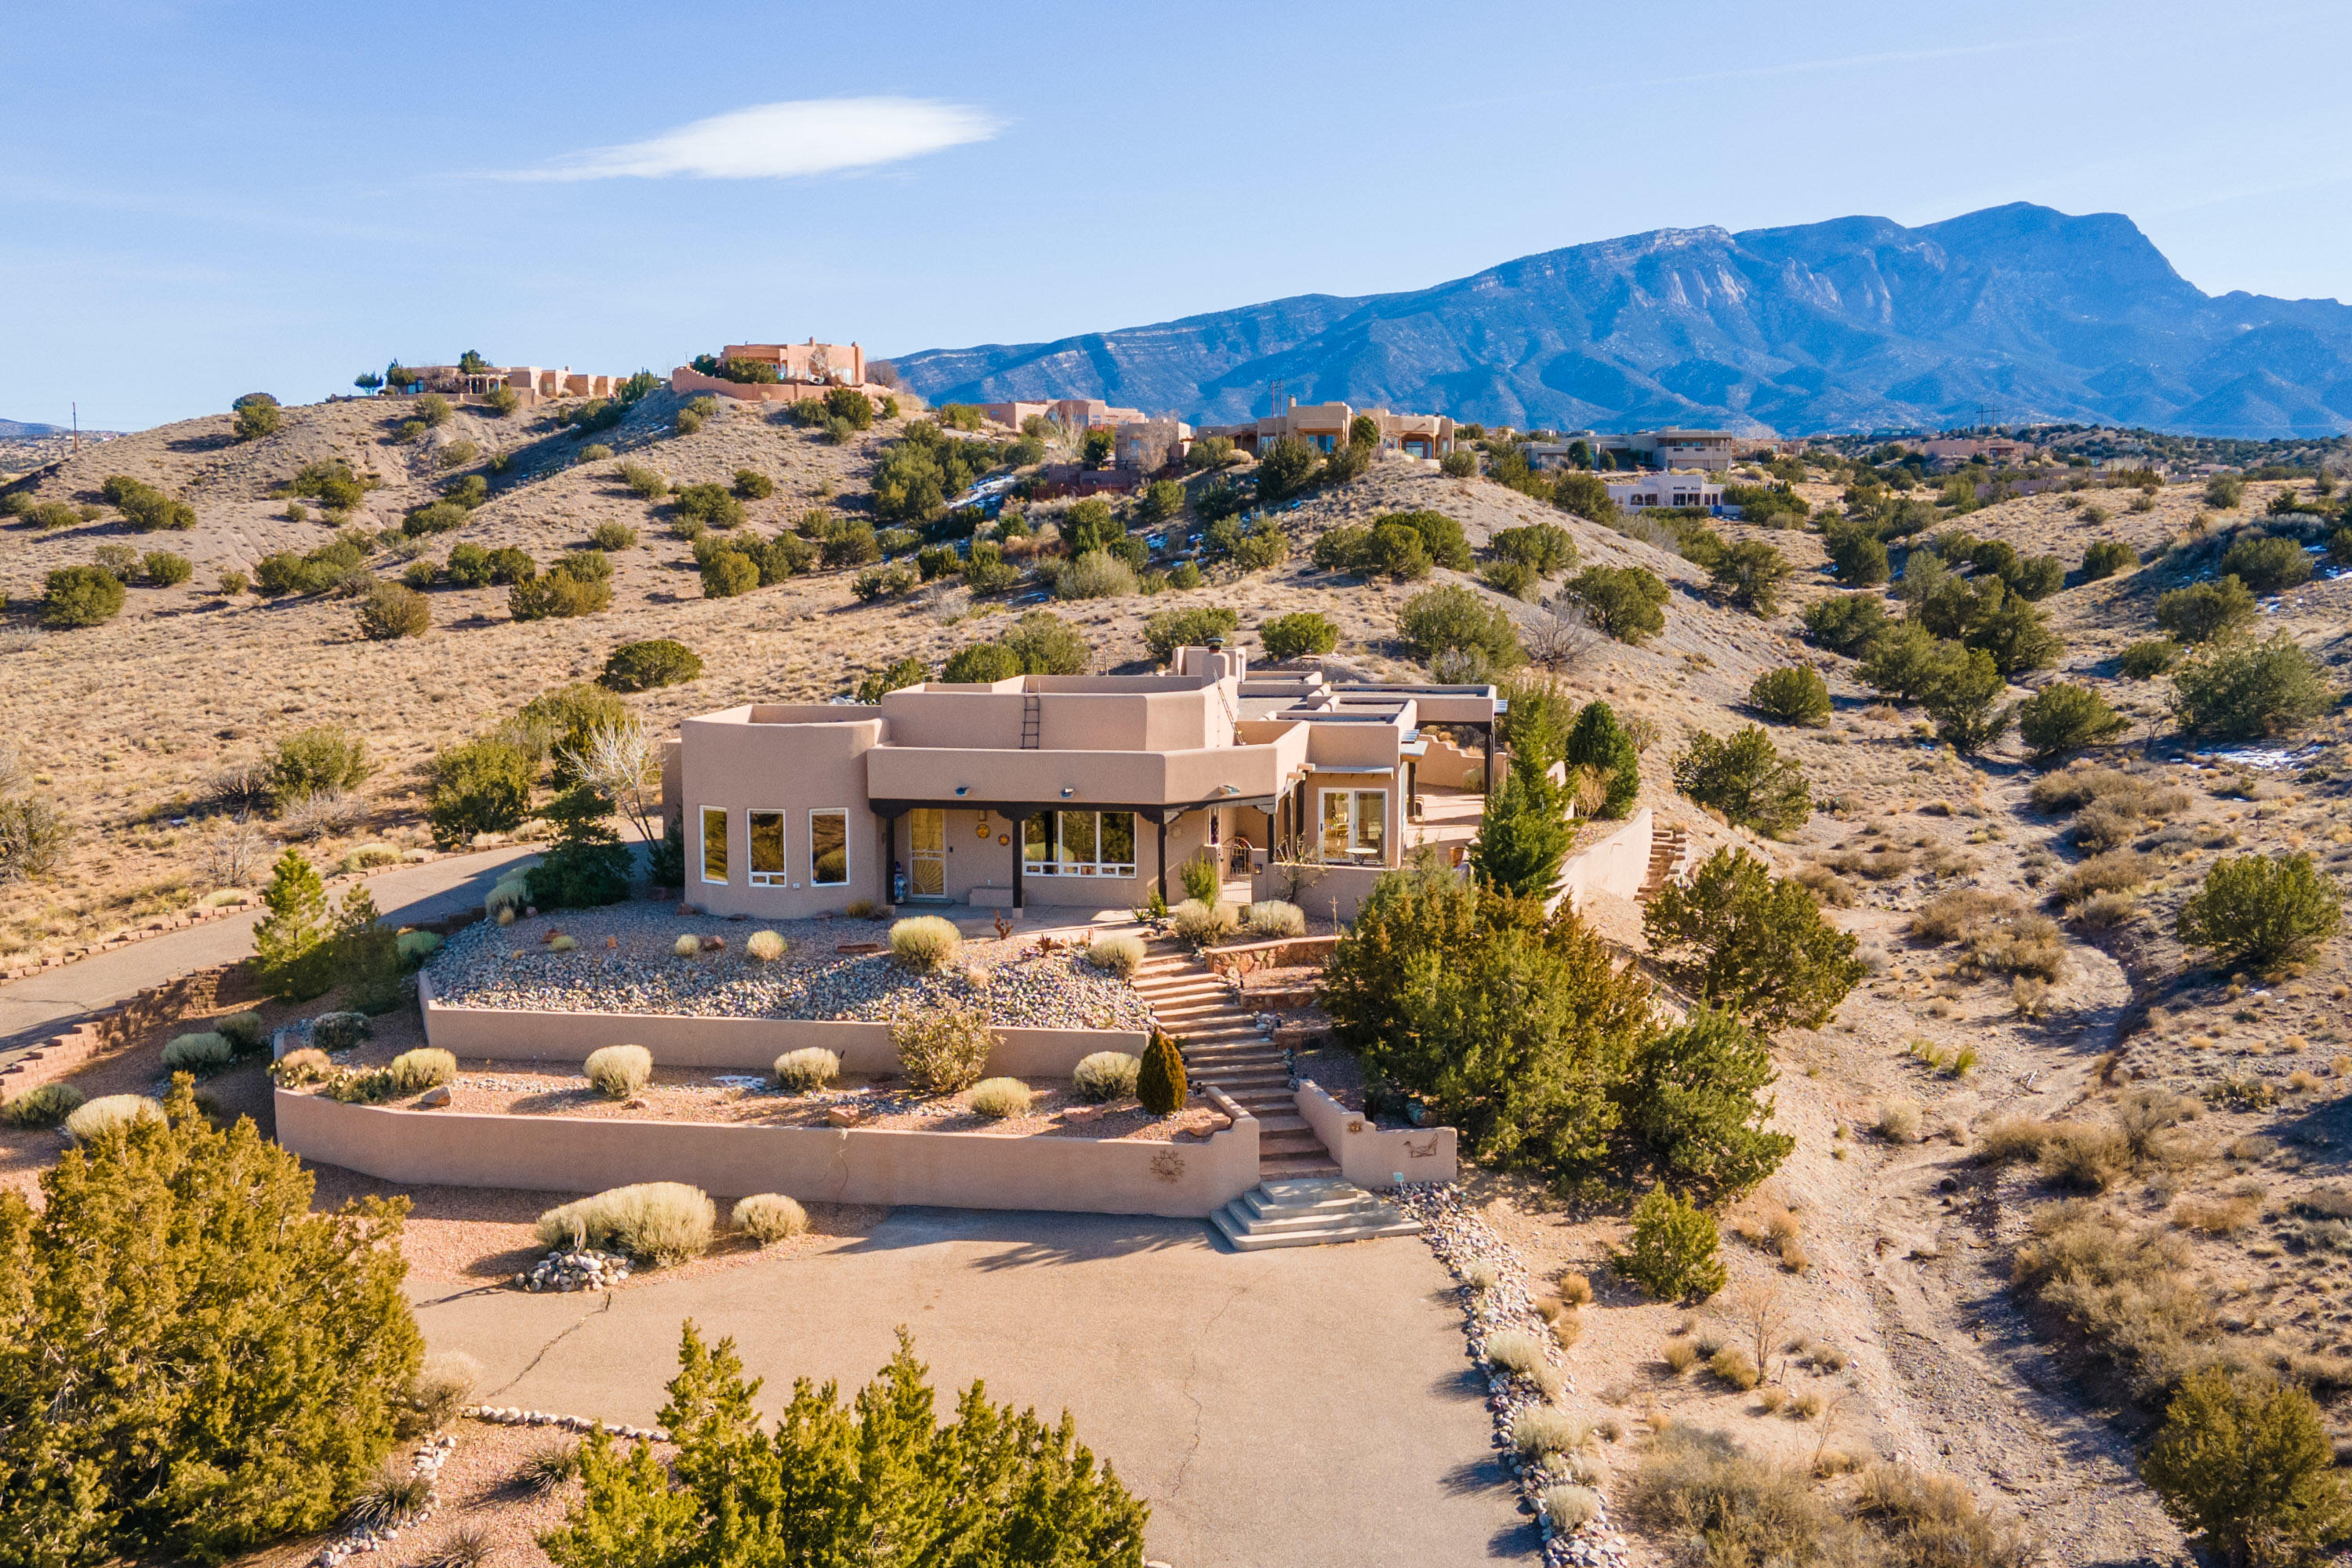 Located at the end of a private road in the desirable Sundance Mesa subdivision, this single level custom home has been thoughtfully updated and lovingly maintained throughout! With direct access to over 5000 acres of BLM land and trails, this home is an outdoor enthusiast's dream! The open concept floor plan is filled with natural light and showcases the amazing Western Mesa and Jemez Mountain views. The great room features 14' beamed ceilings, a cozy kiva fireplace and opens to the extensively remodeled chef's kitchen with amenities including: 2 large islands - one with wine and beverage coolers, a breakfast bar, beautiful dining area with custom banco, quartz countertops, s/s appliances . . . Please click ''More'' for additional information on this incredible property . . .